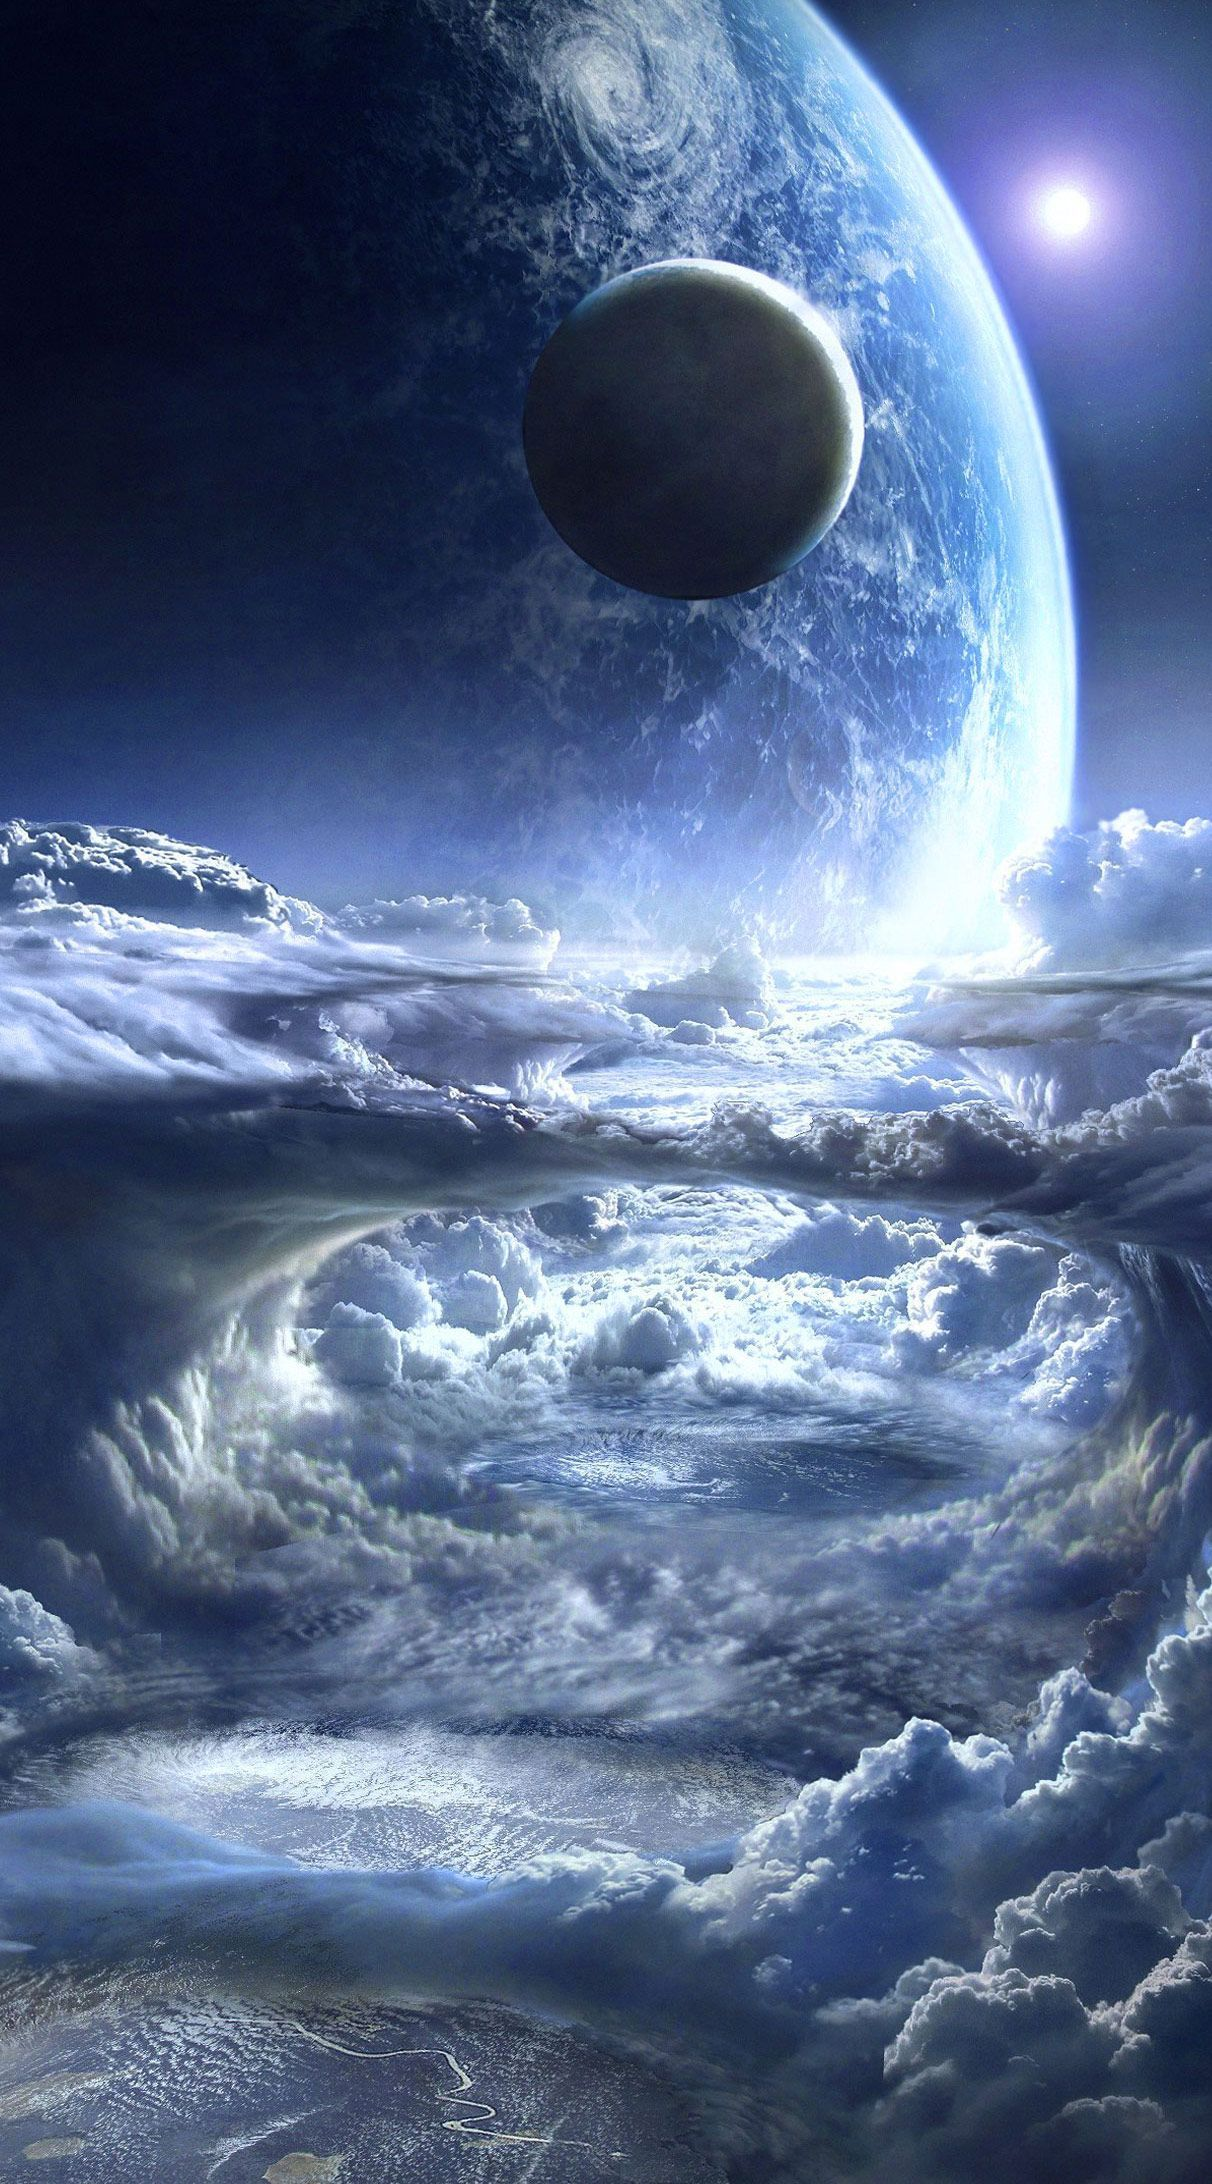 1212x2184 Sci Fi Wallpapers Hd And Widescreen Sci Fi Wallpapers 4k Wallpaper Sci Fi Wallpaper Wallpaper Space Planets Wallpaper